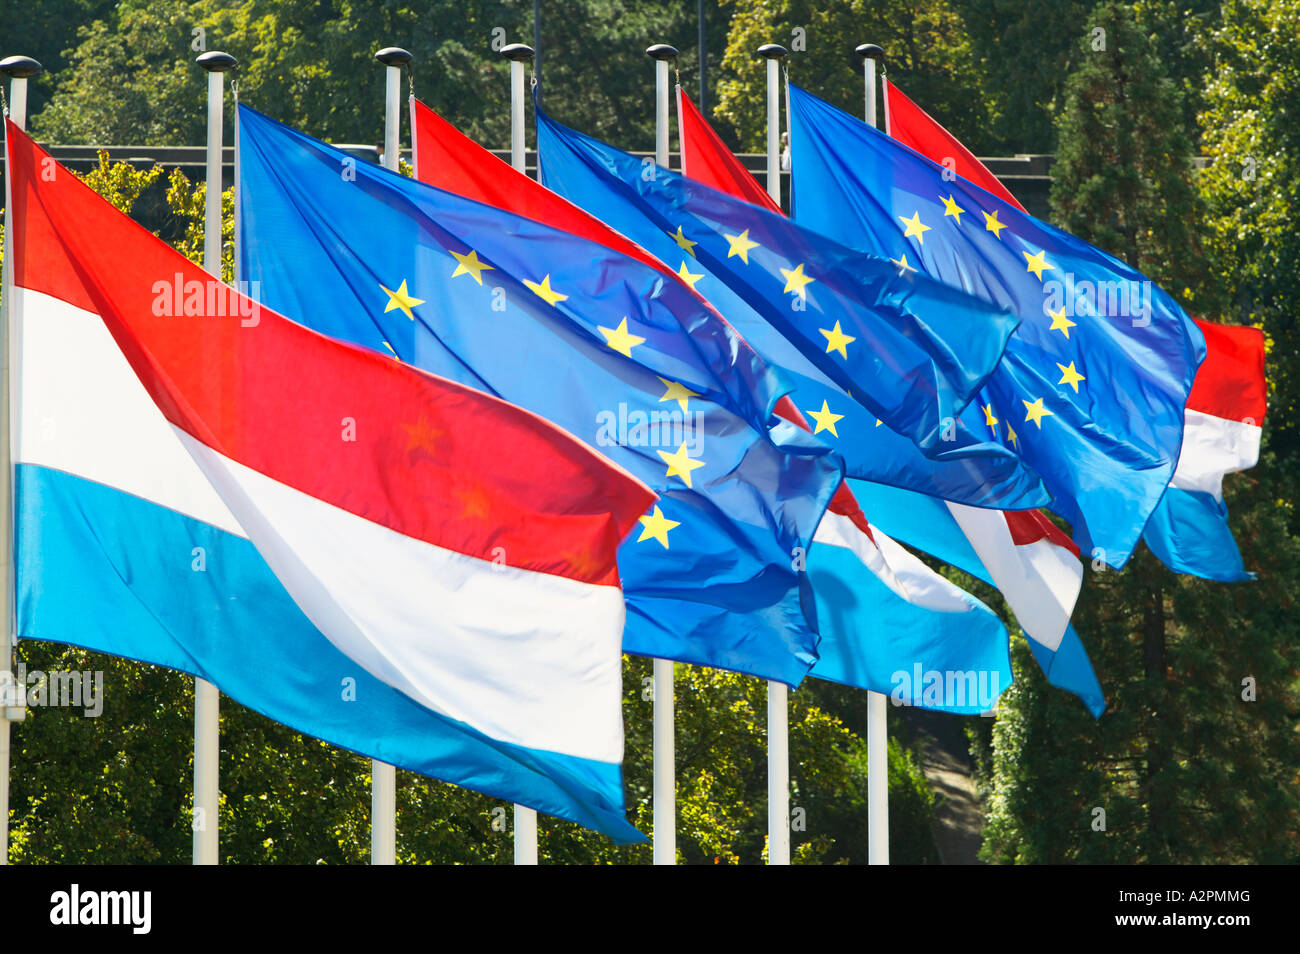 The Luxembourg and European Union flags in Luxembourg City - Stock Image